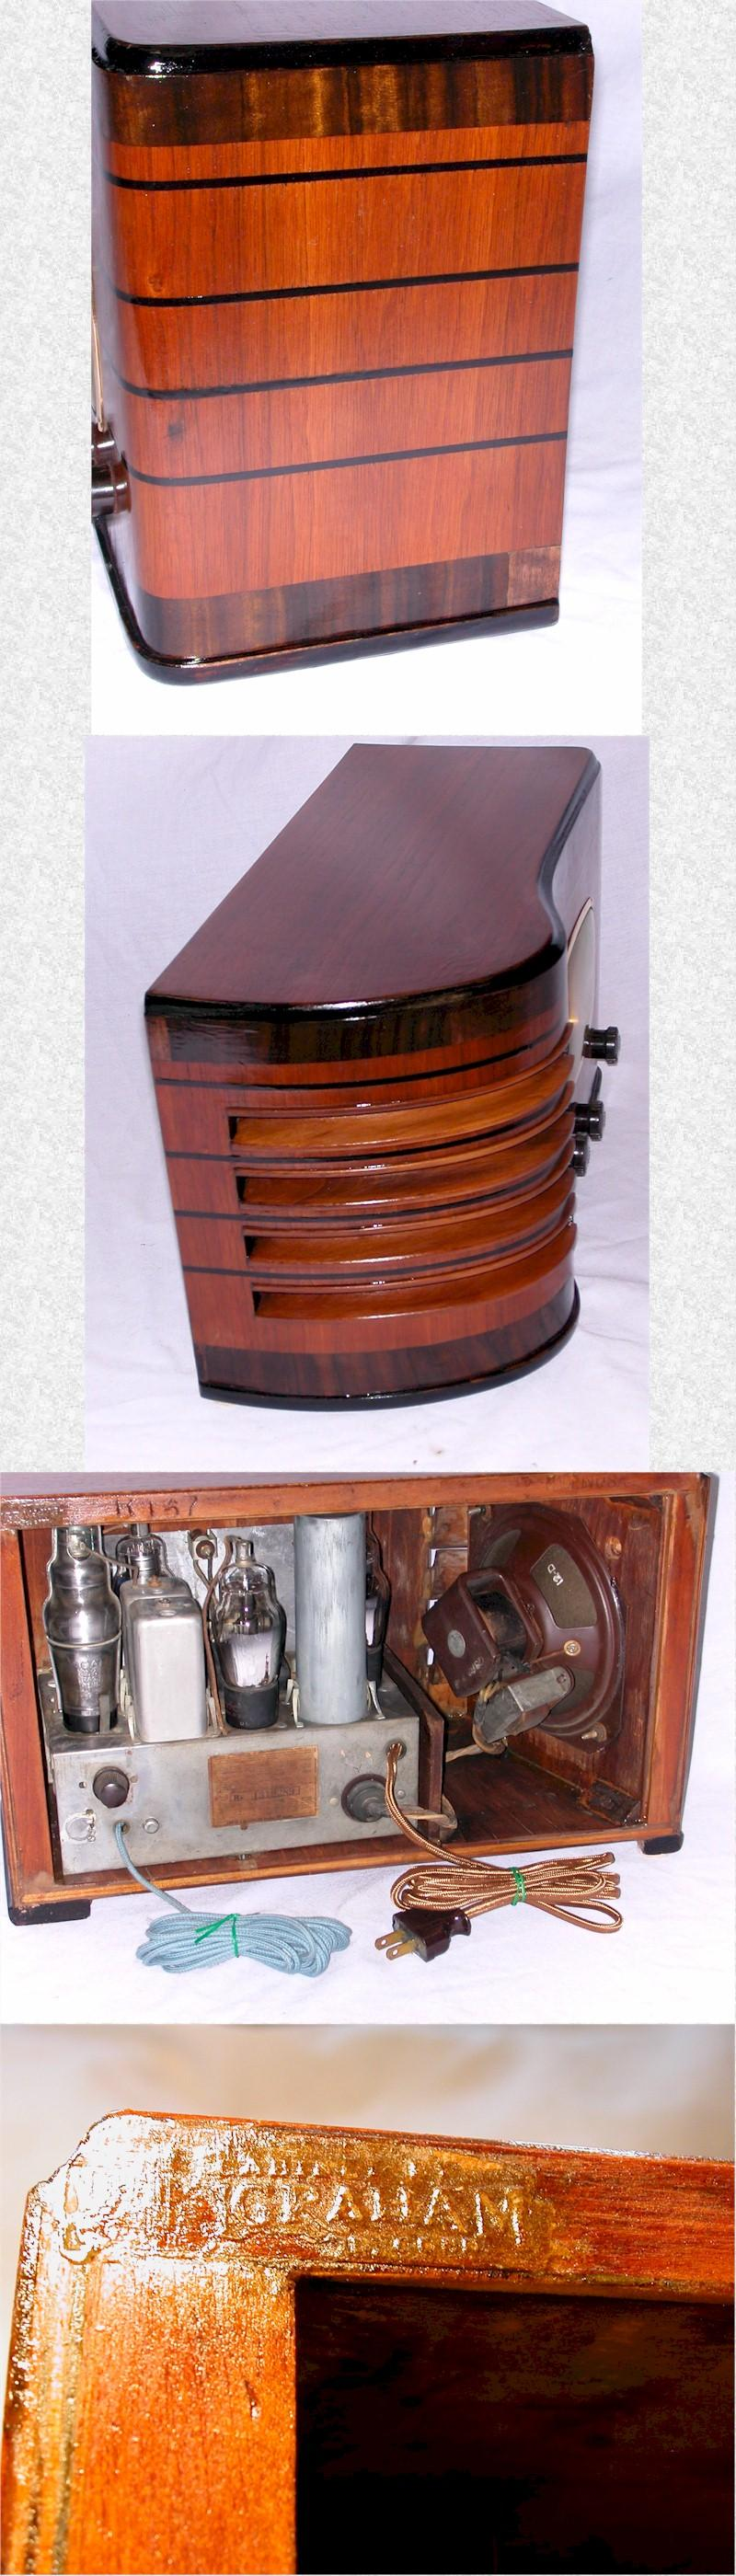 Emerson R167 with Ingraham Cabinet (1938)